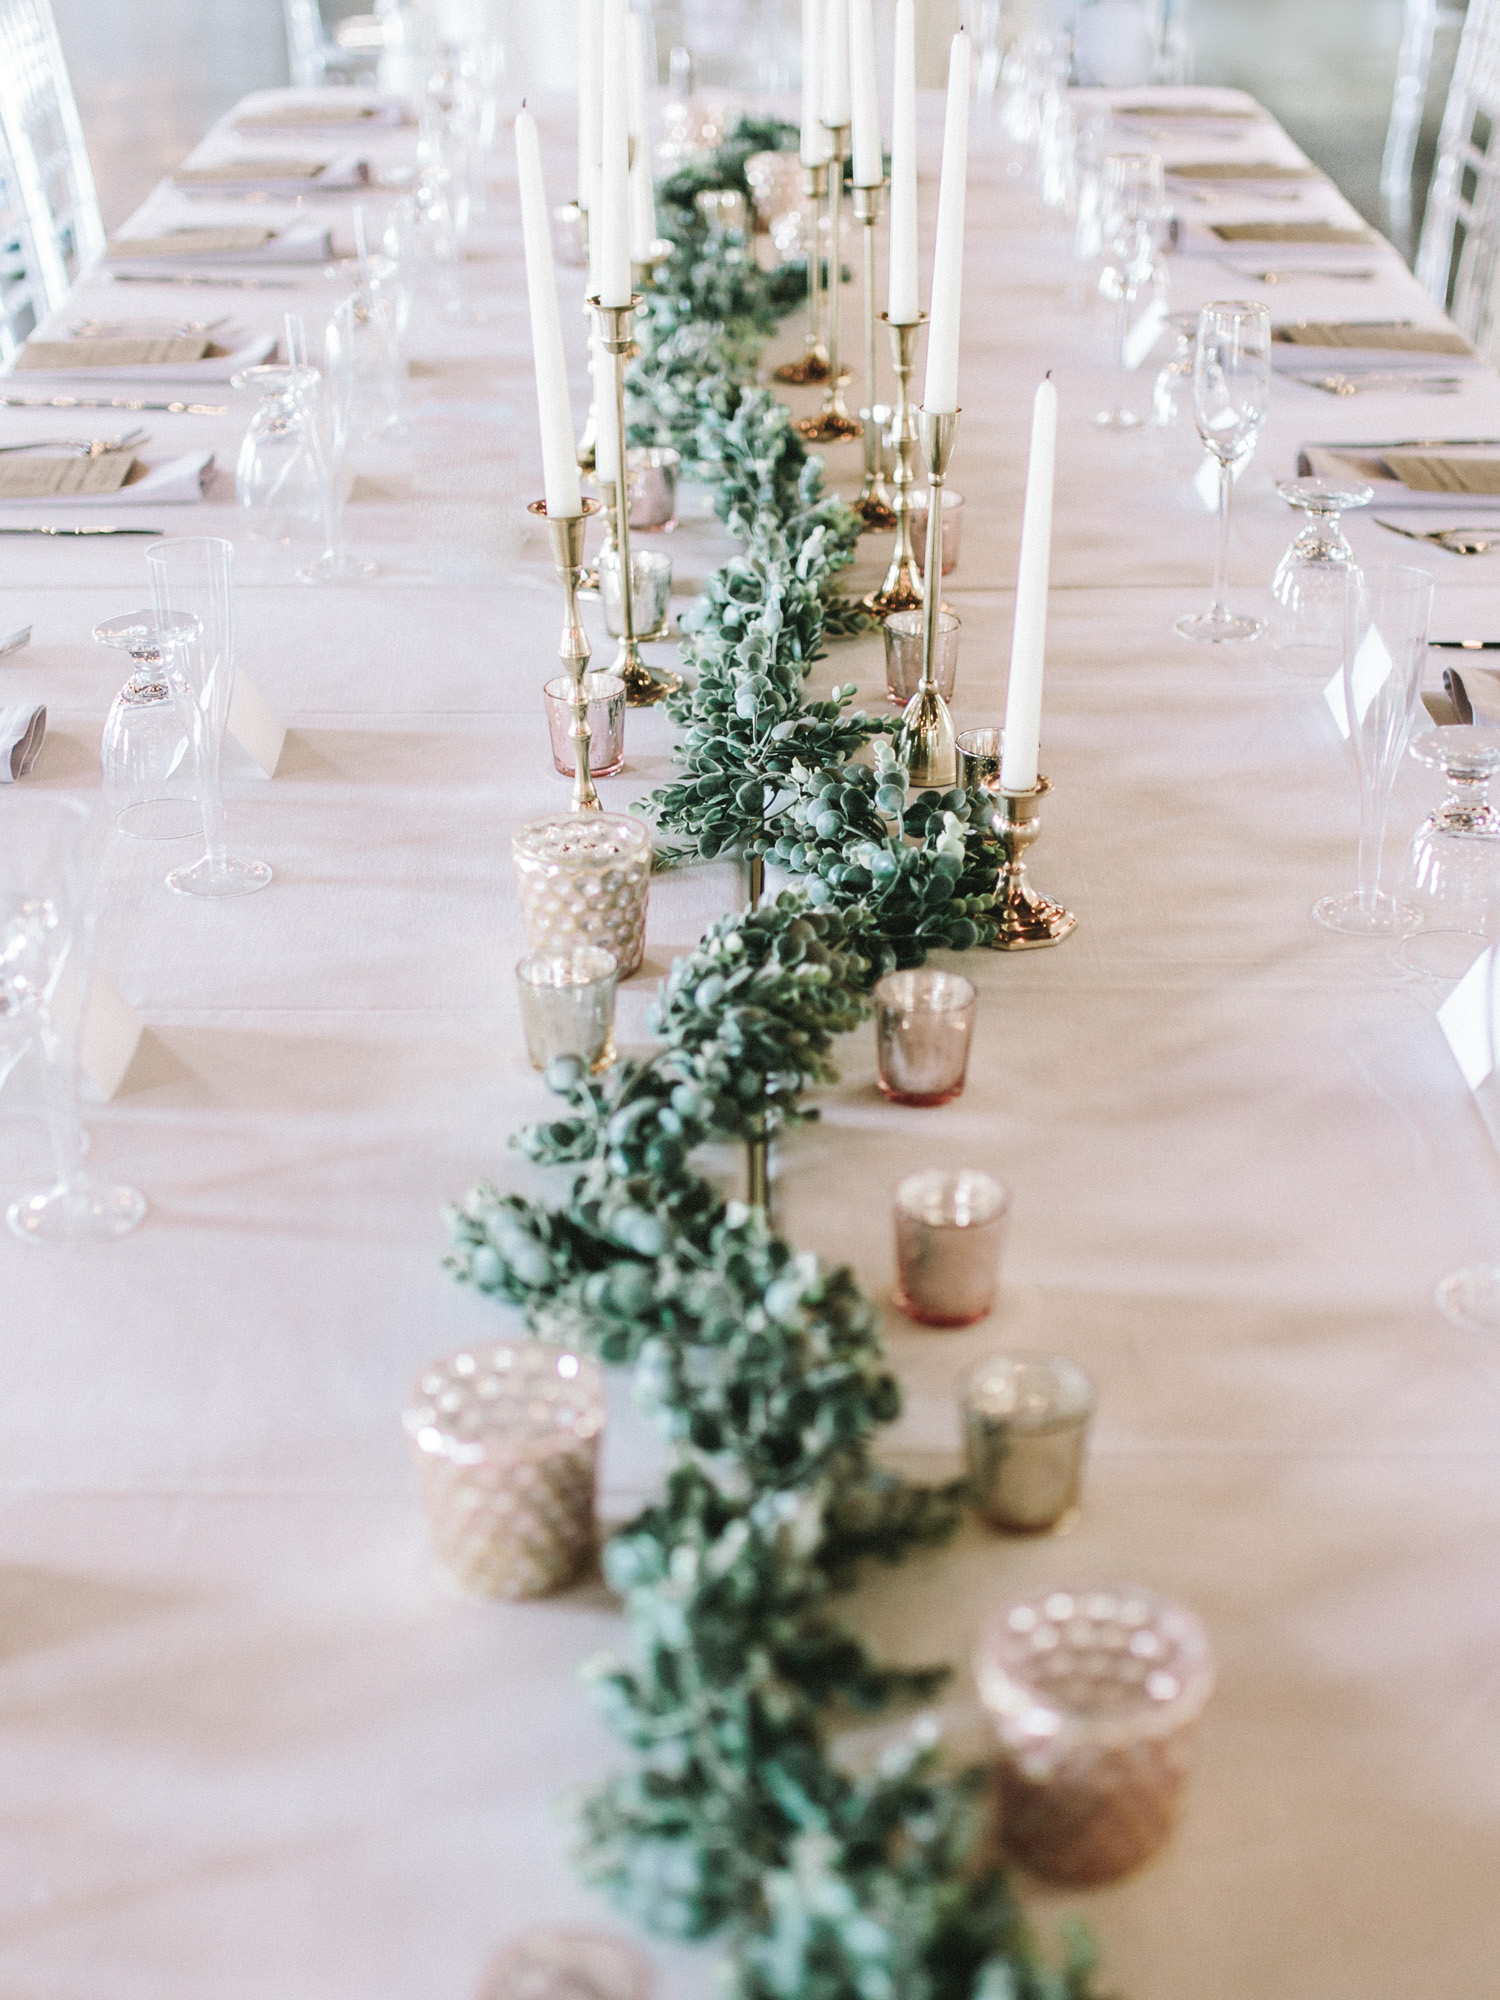 Ethereal and romantic wedding reception table style with ethereal blush and gold candles at a South Bend, Indiana wedding